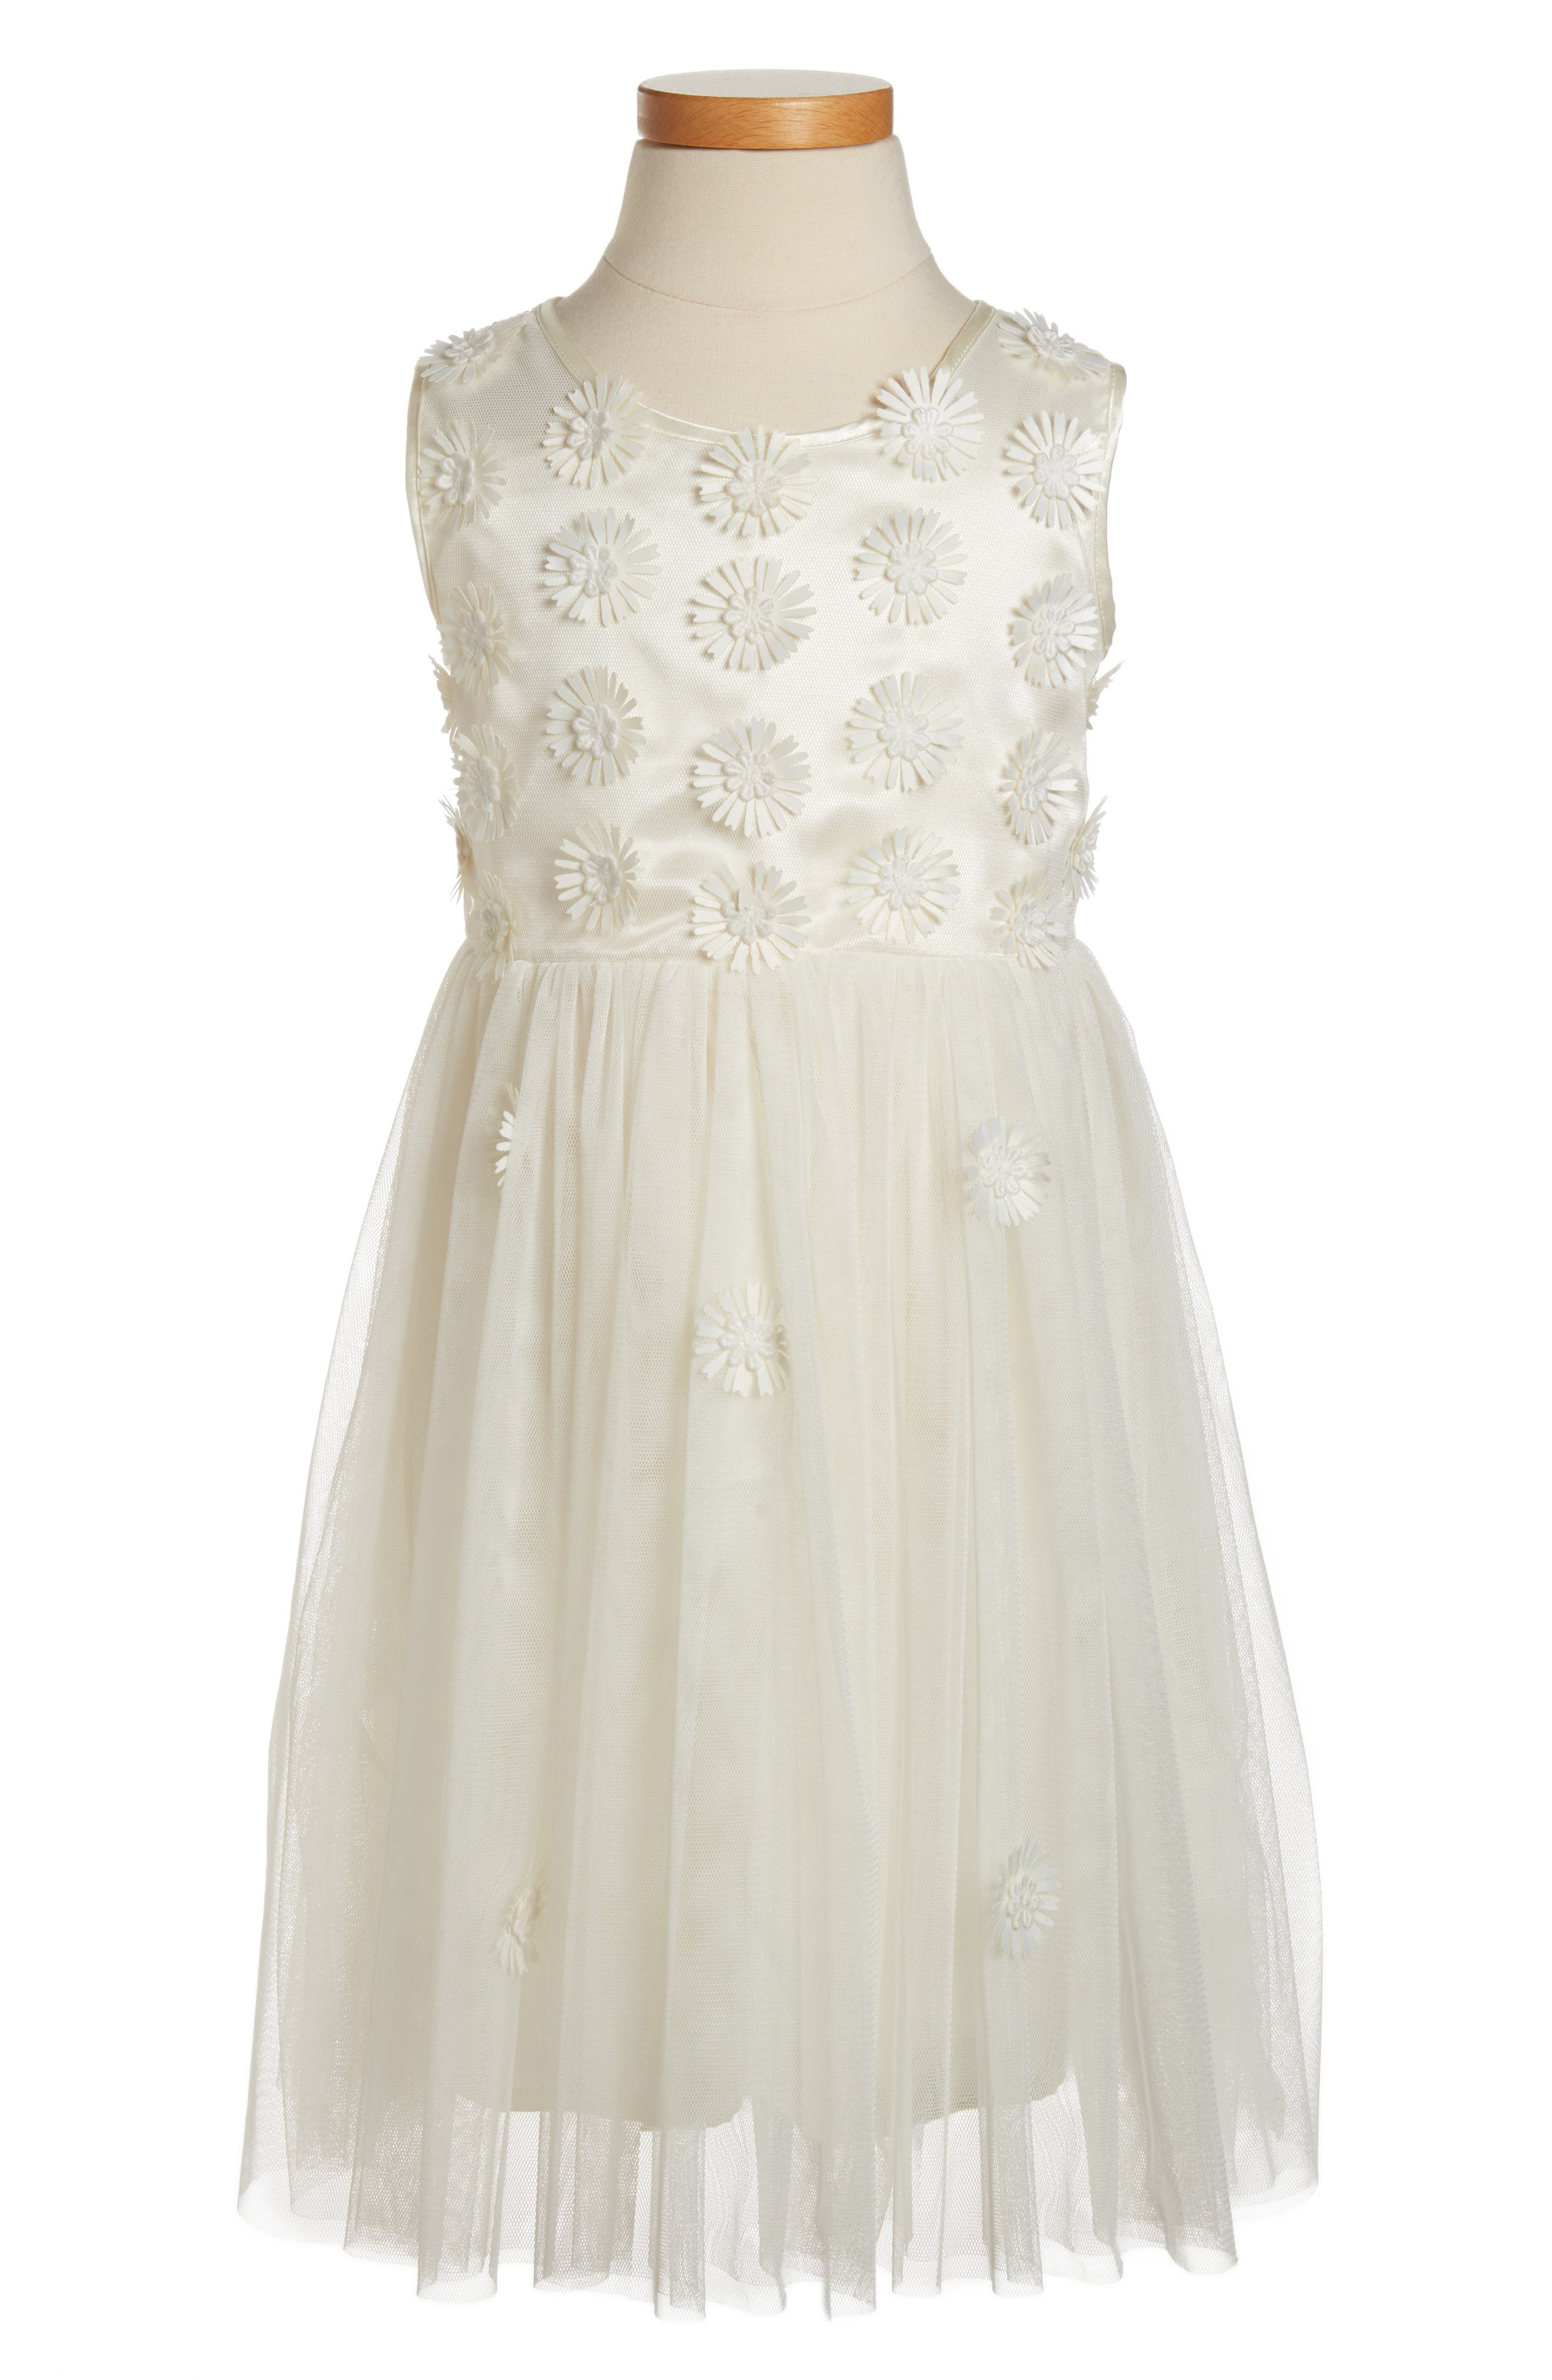 Daisy Sleeveless Dress,                             Main thumbnail 1, color,                             White